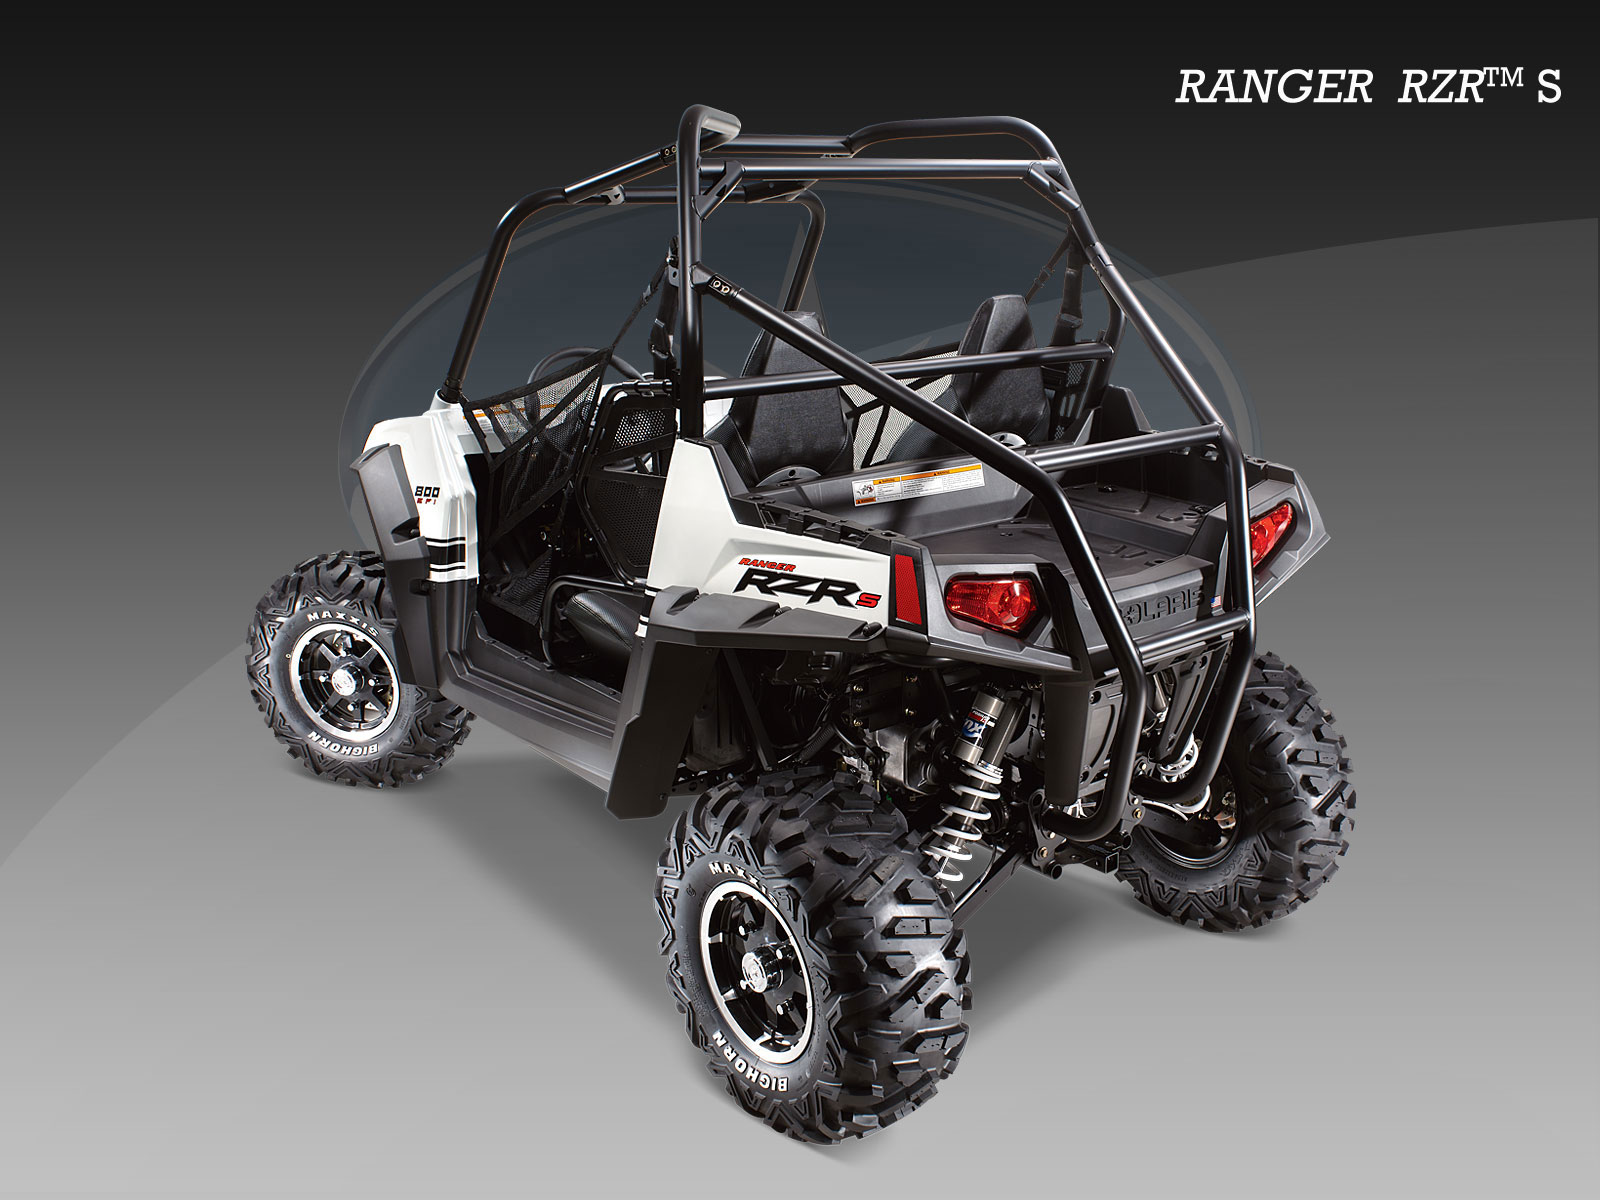 http://www.totalmotorcycle.com/ATV-Quad/2010ATVmodels/2010-Polaris-RangerRZRSc.jpg